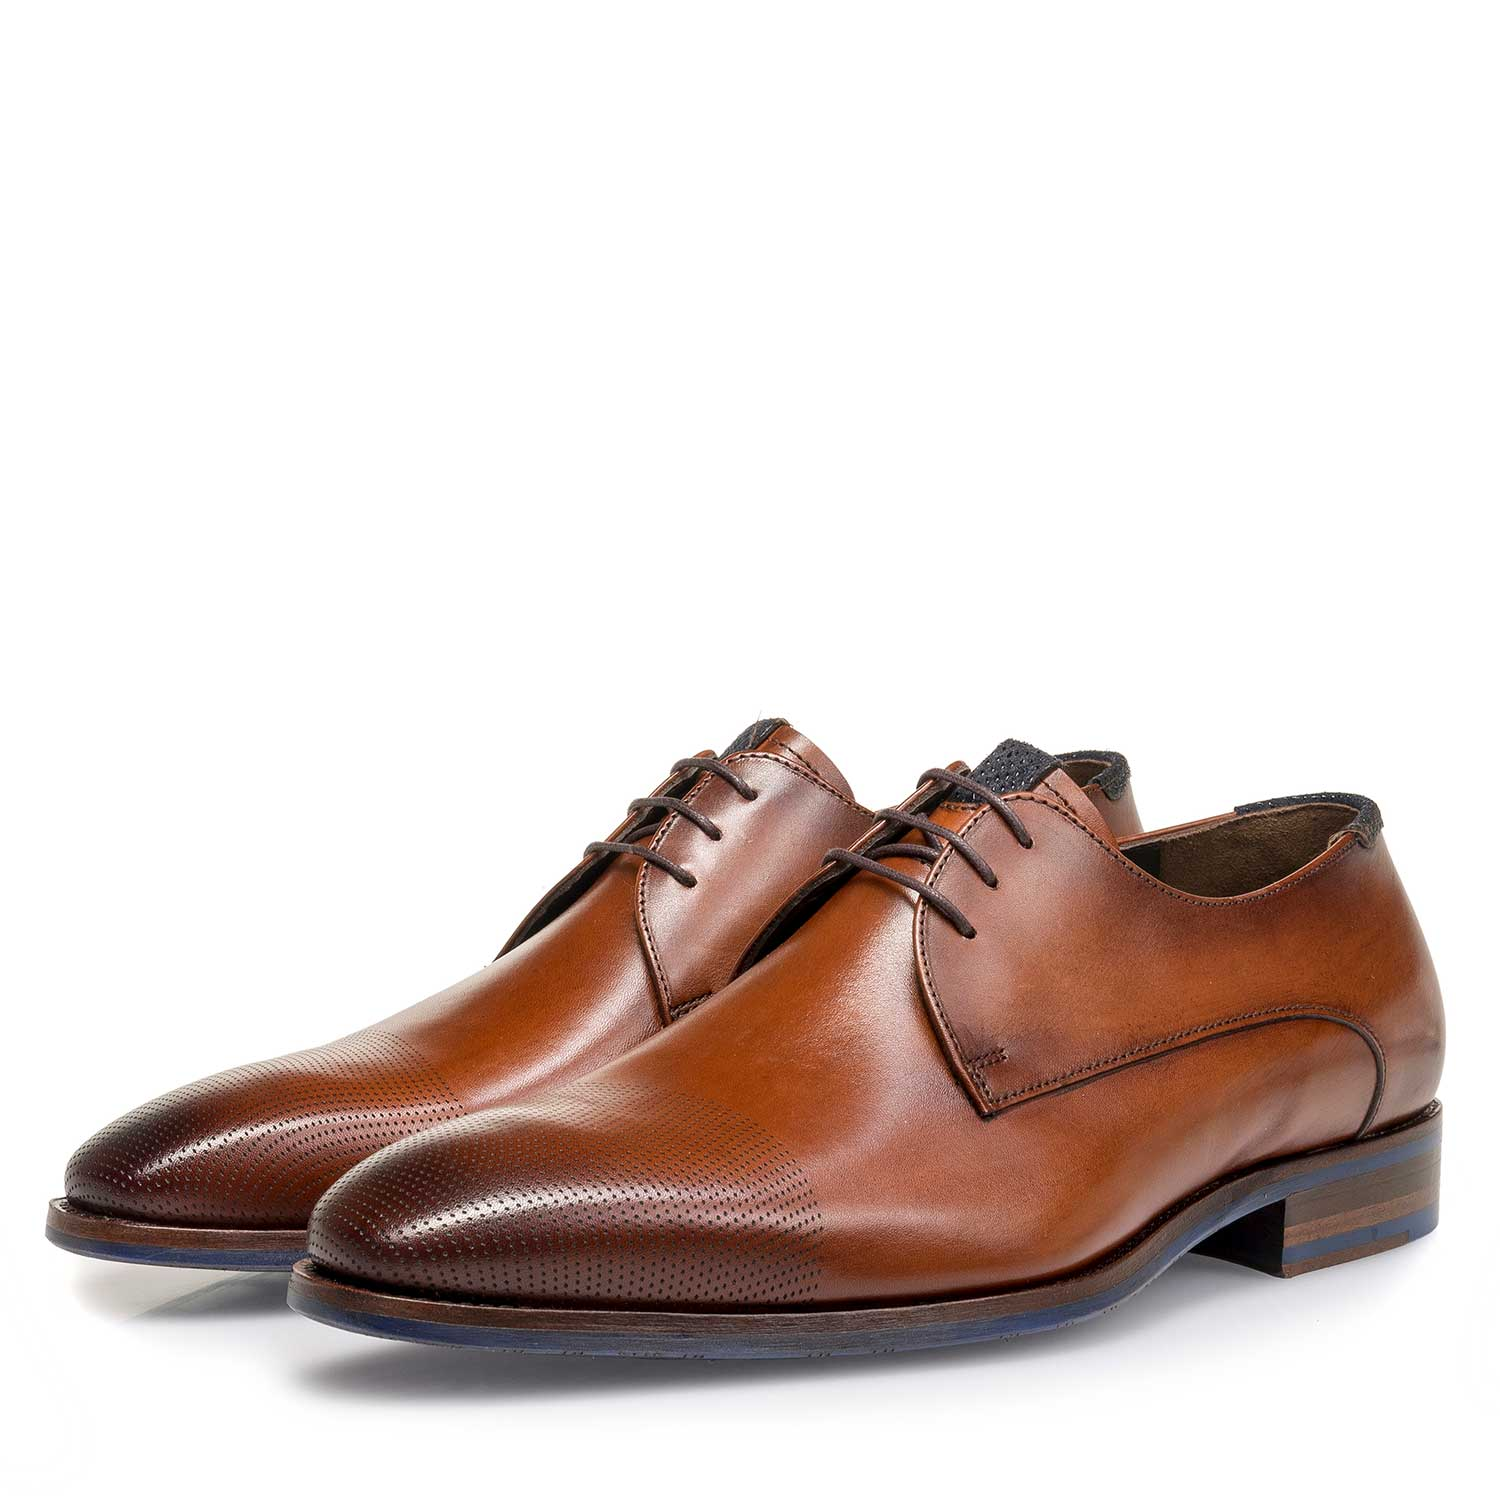 18088/00 - Cognac-coloured calf leather lace shoe